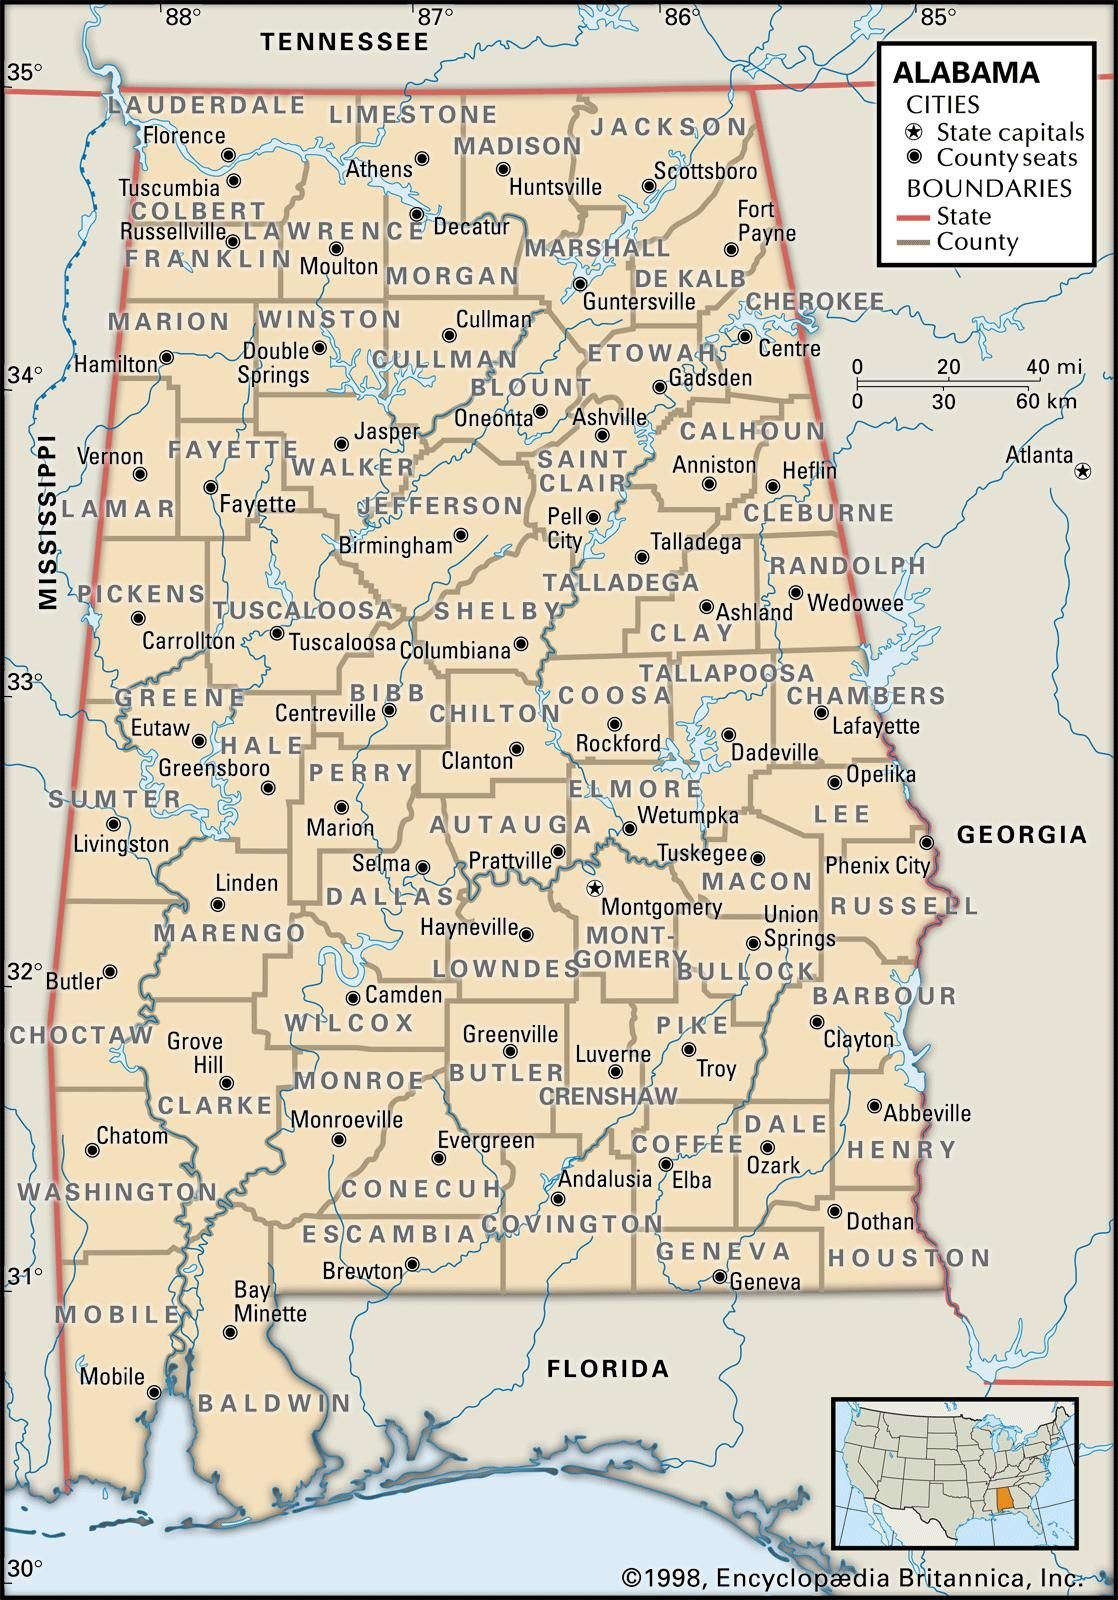 photo about Printable Map of Kentucky Counties identify Map of Alabama county restrictions and county seats